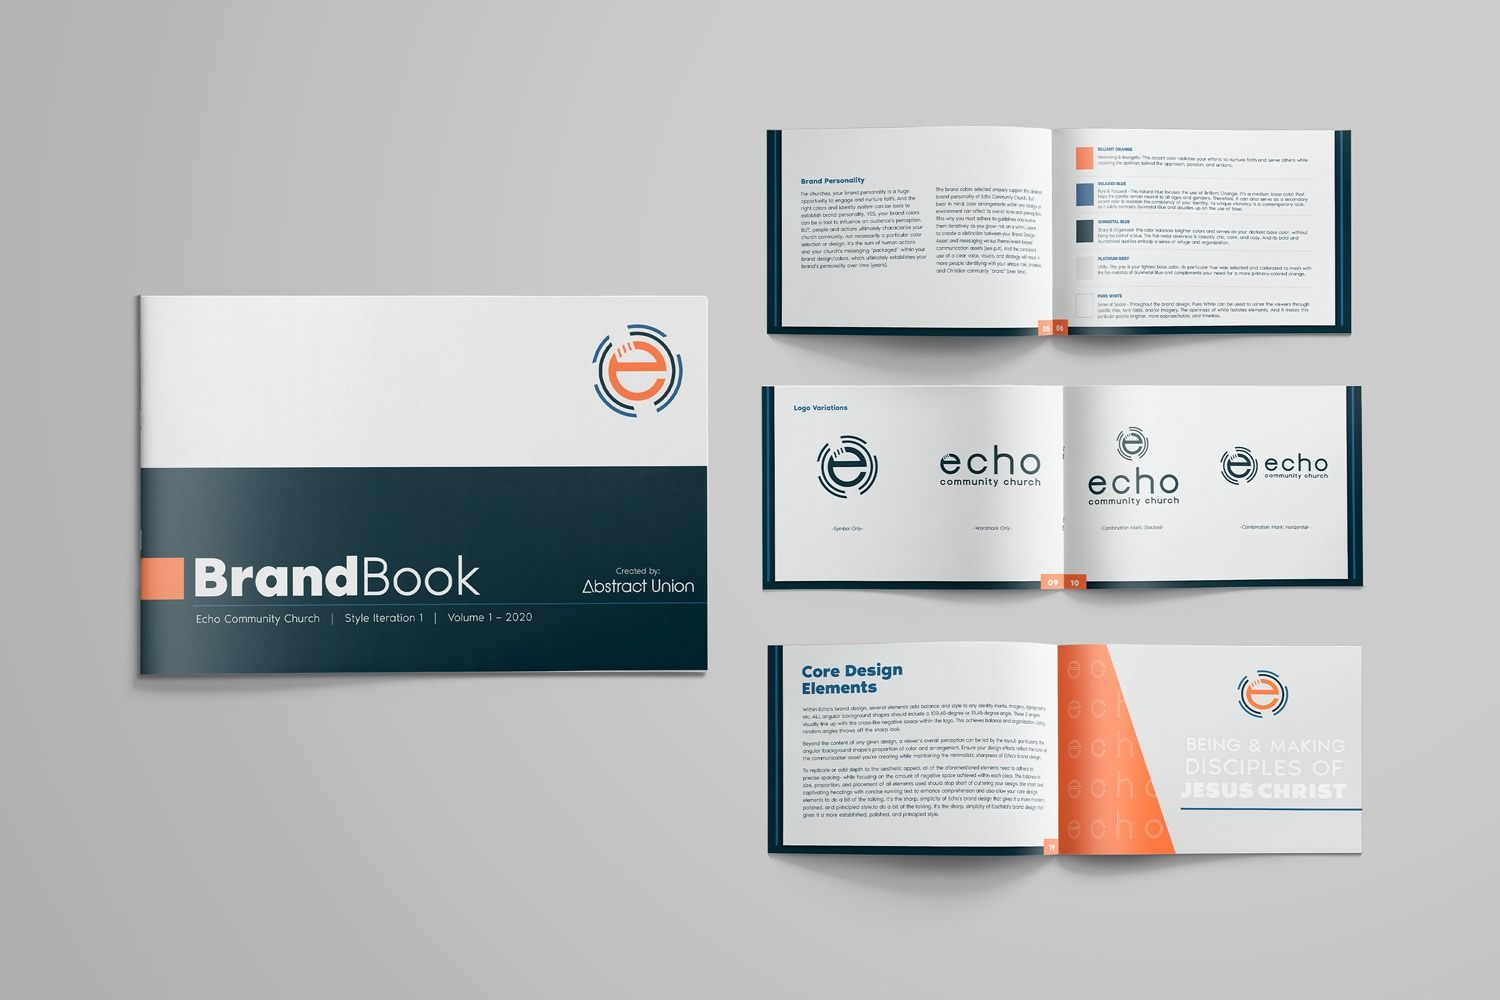 Church brand guidelines examples for branding guide strategy by church branding companies and consultants